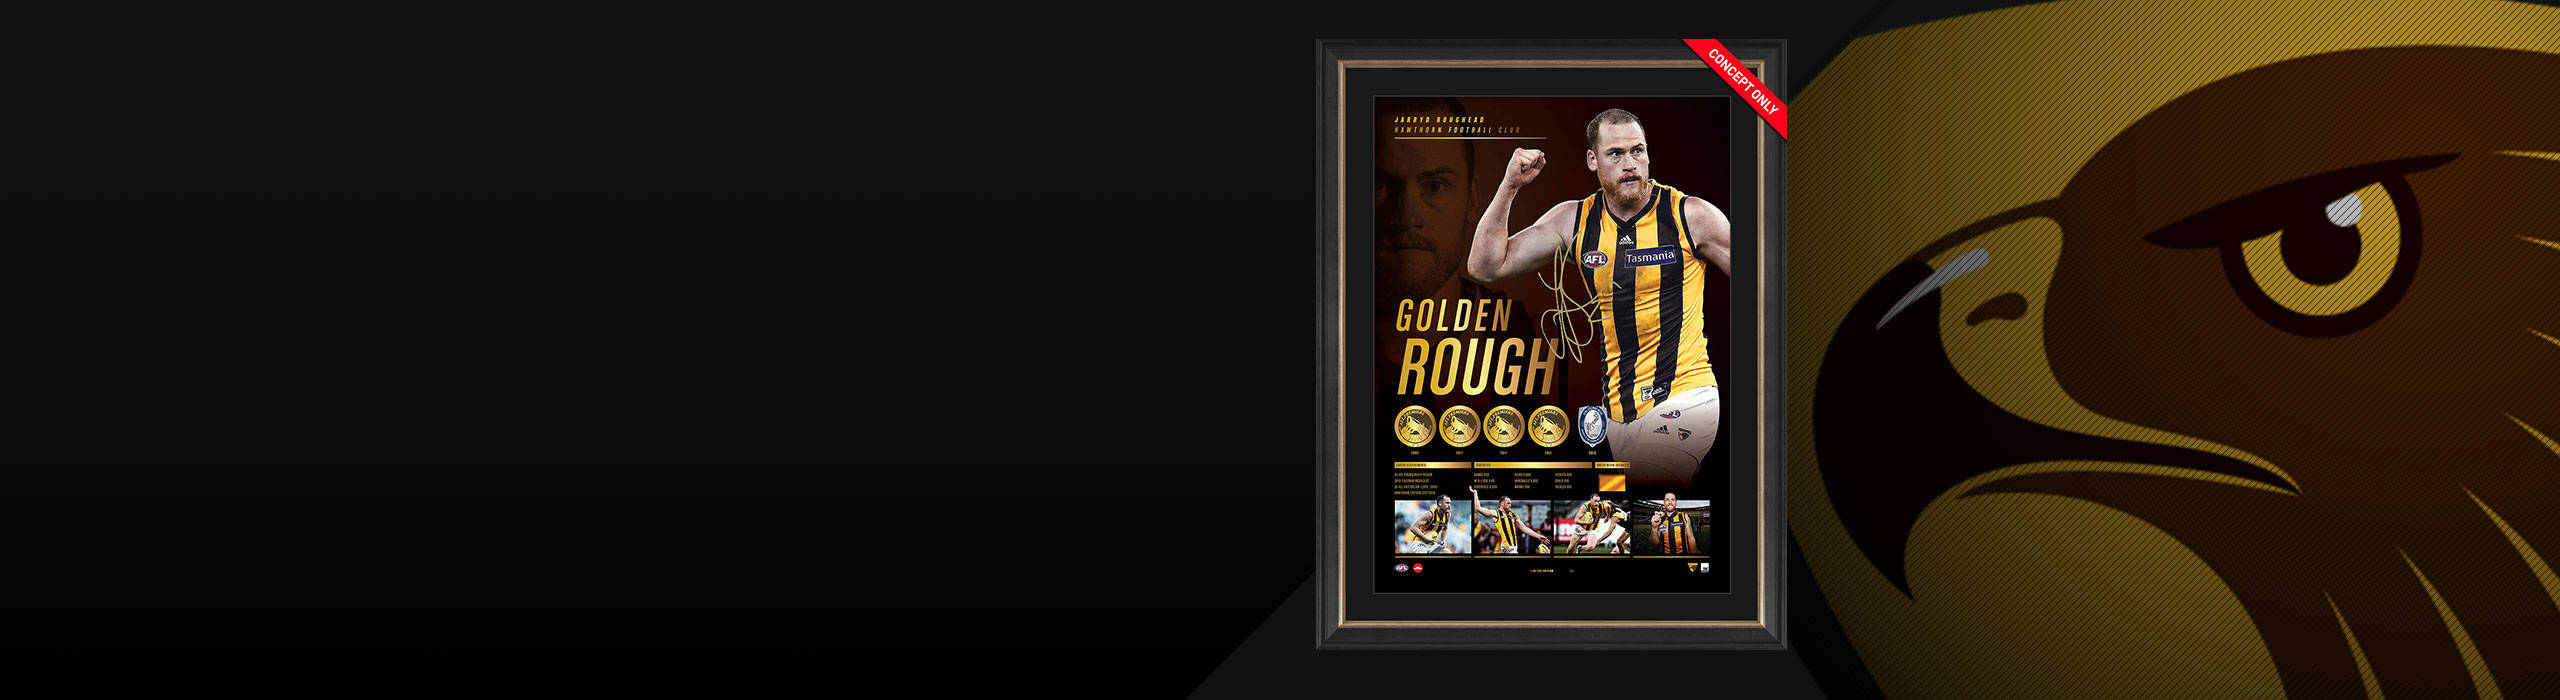 FAREWELL, ROUGHY!